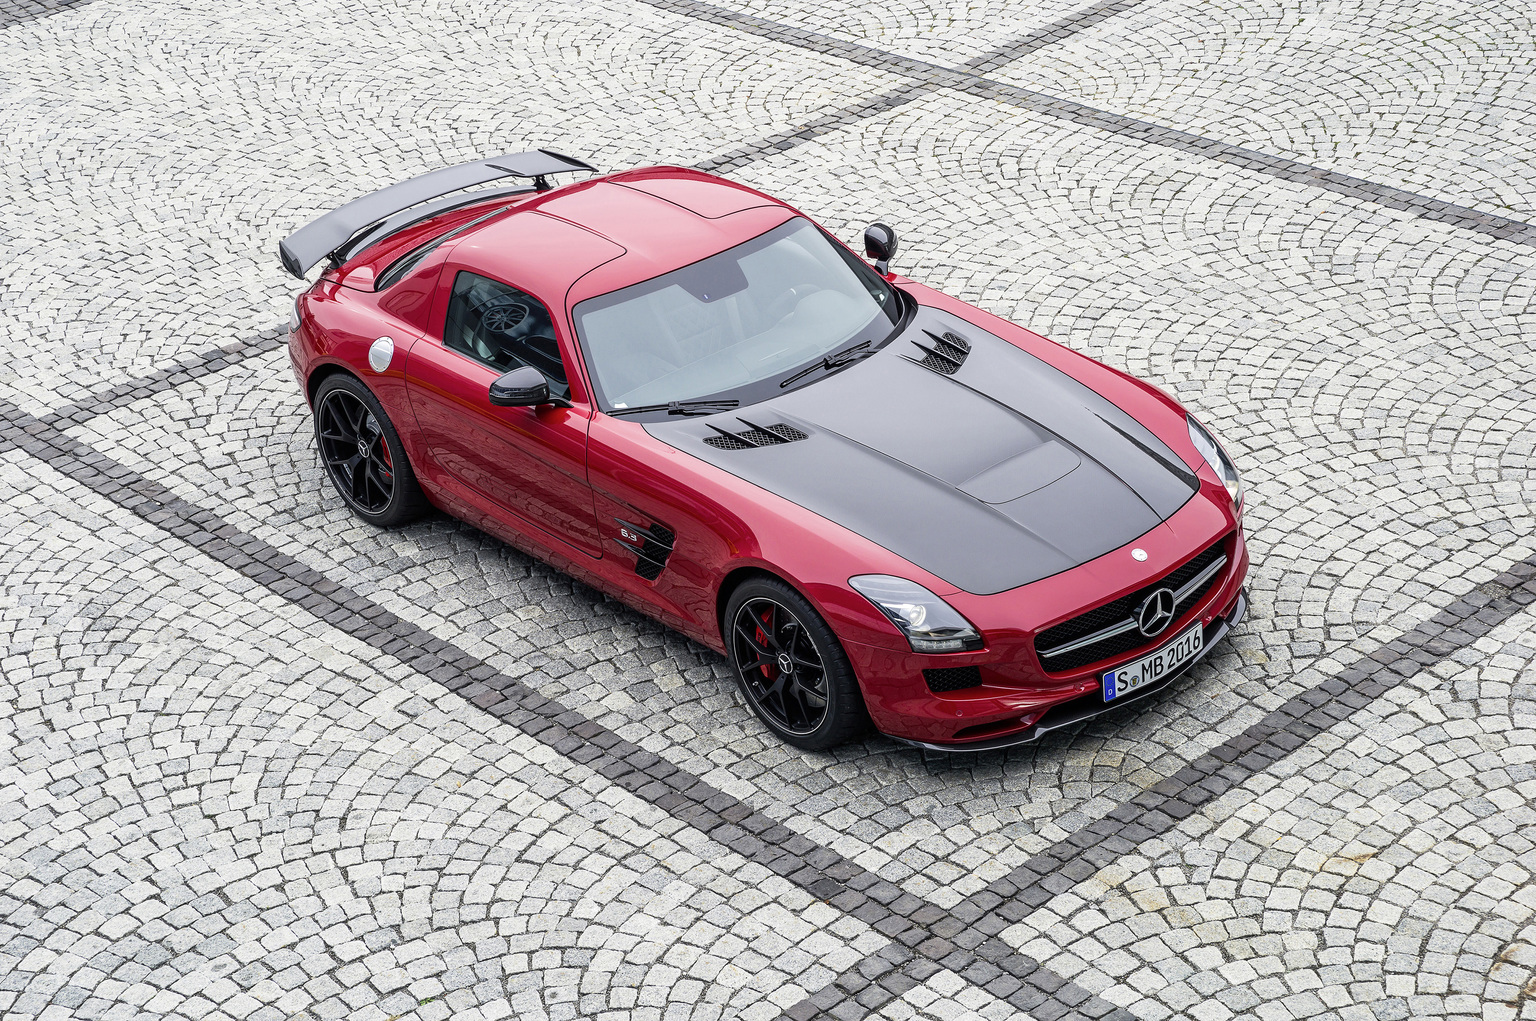 Mercedes-Benz Sls Amg Gt Final Edition #22